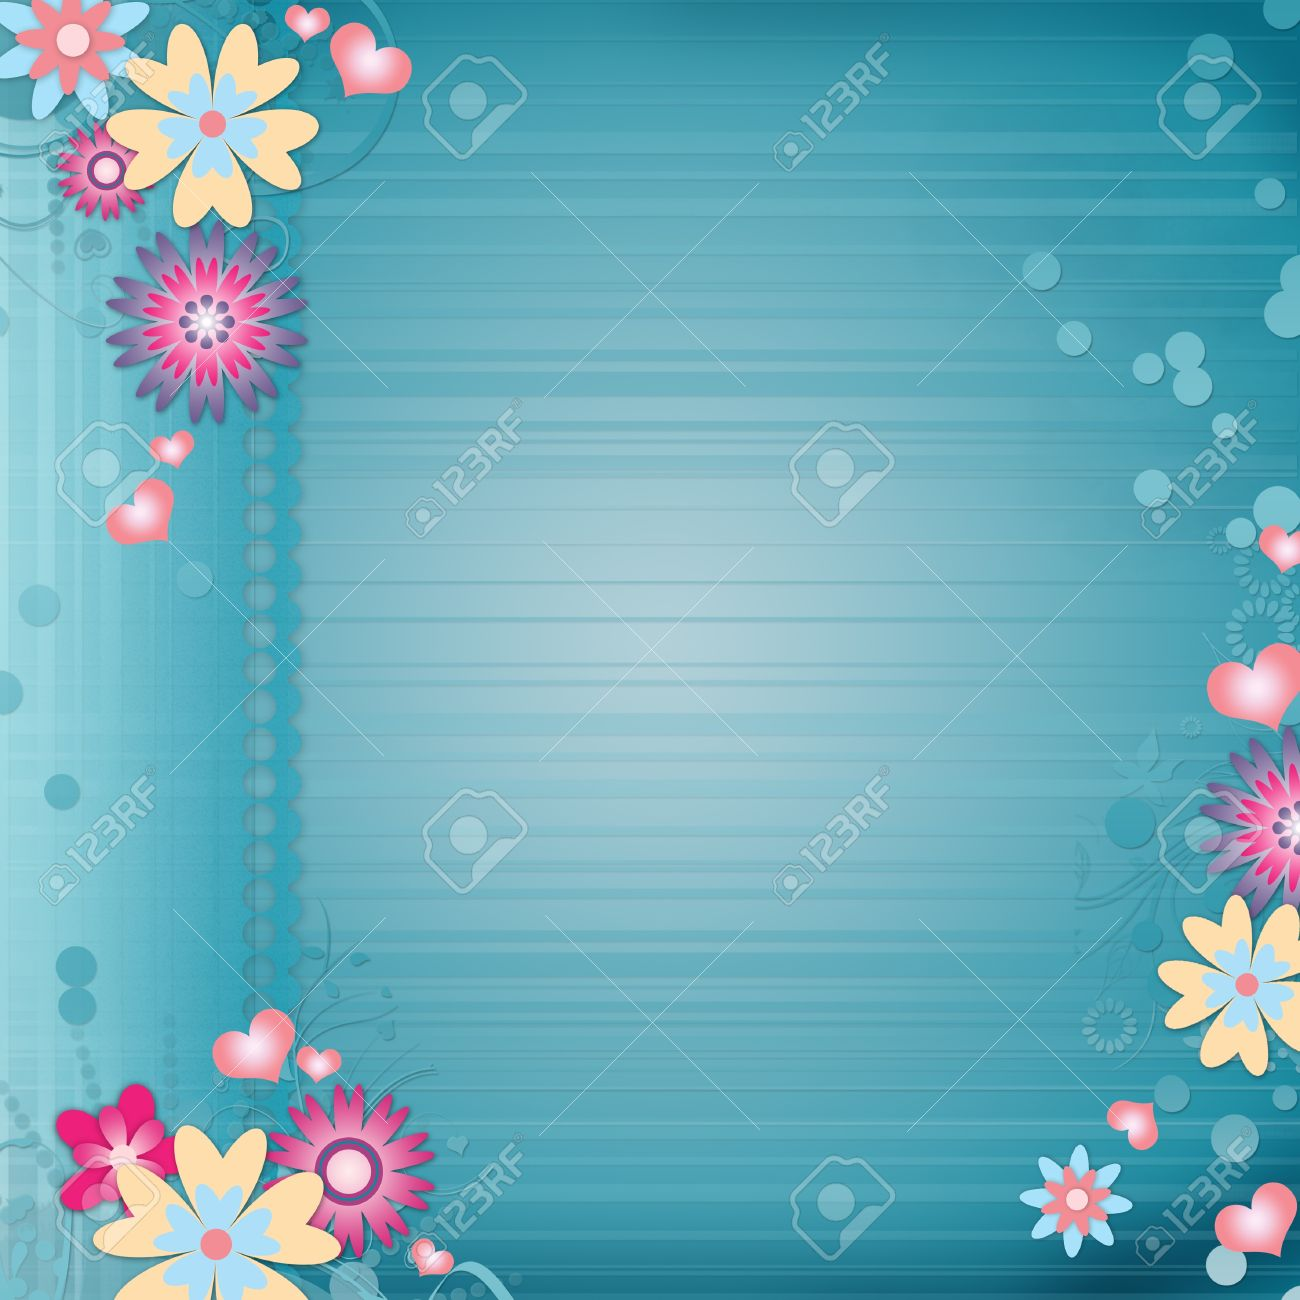 background images for birthday greeting cards ; 12510009-Greeting-card-background-with-flowers-hearts-Stock-Photo-invitation-birthday-kids